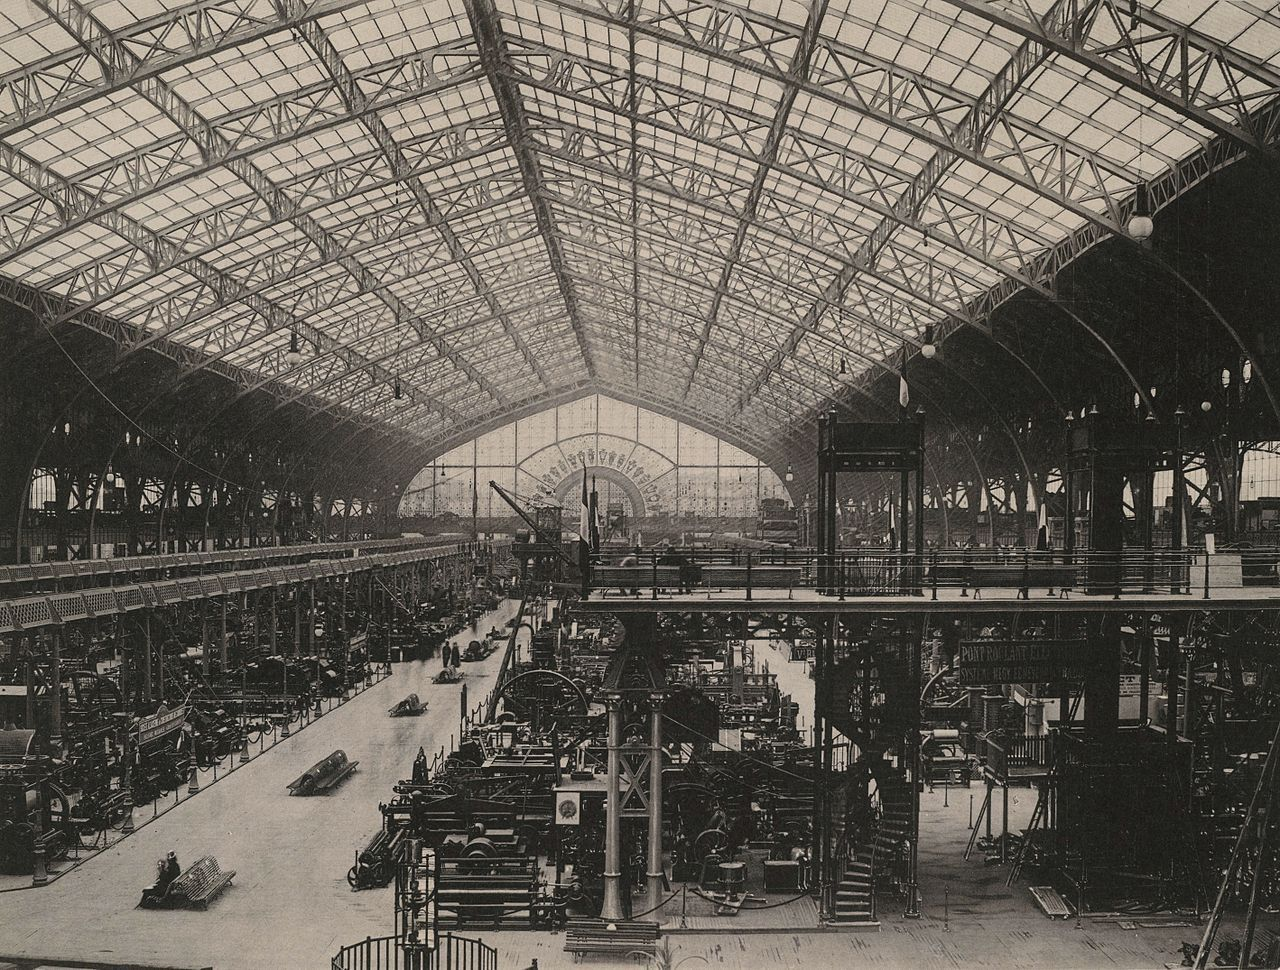 archimaps:  Inside the Galerie des Machines at the Exposition Universelle in 1889, Paris